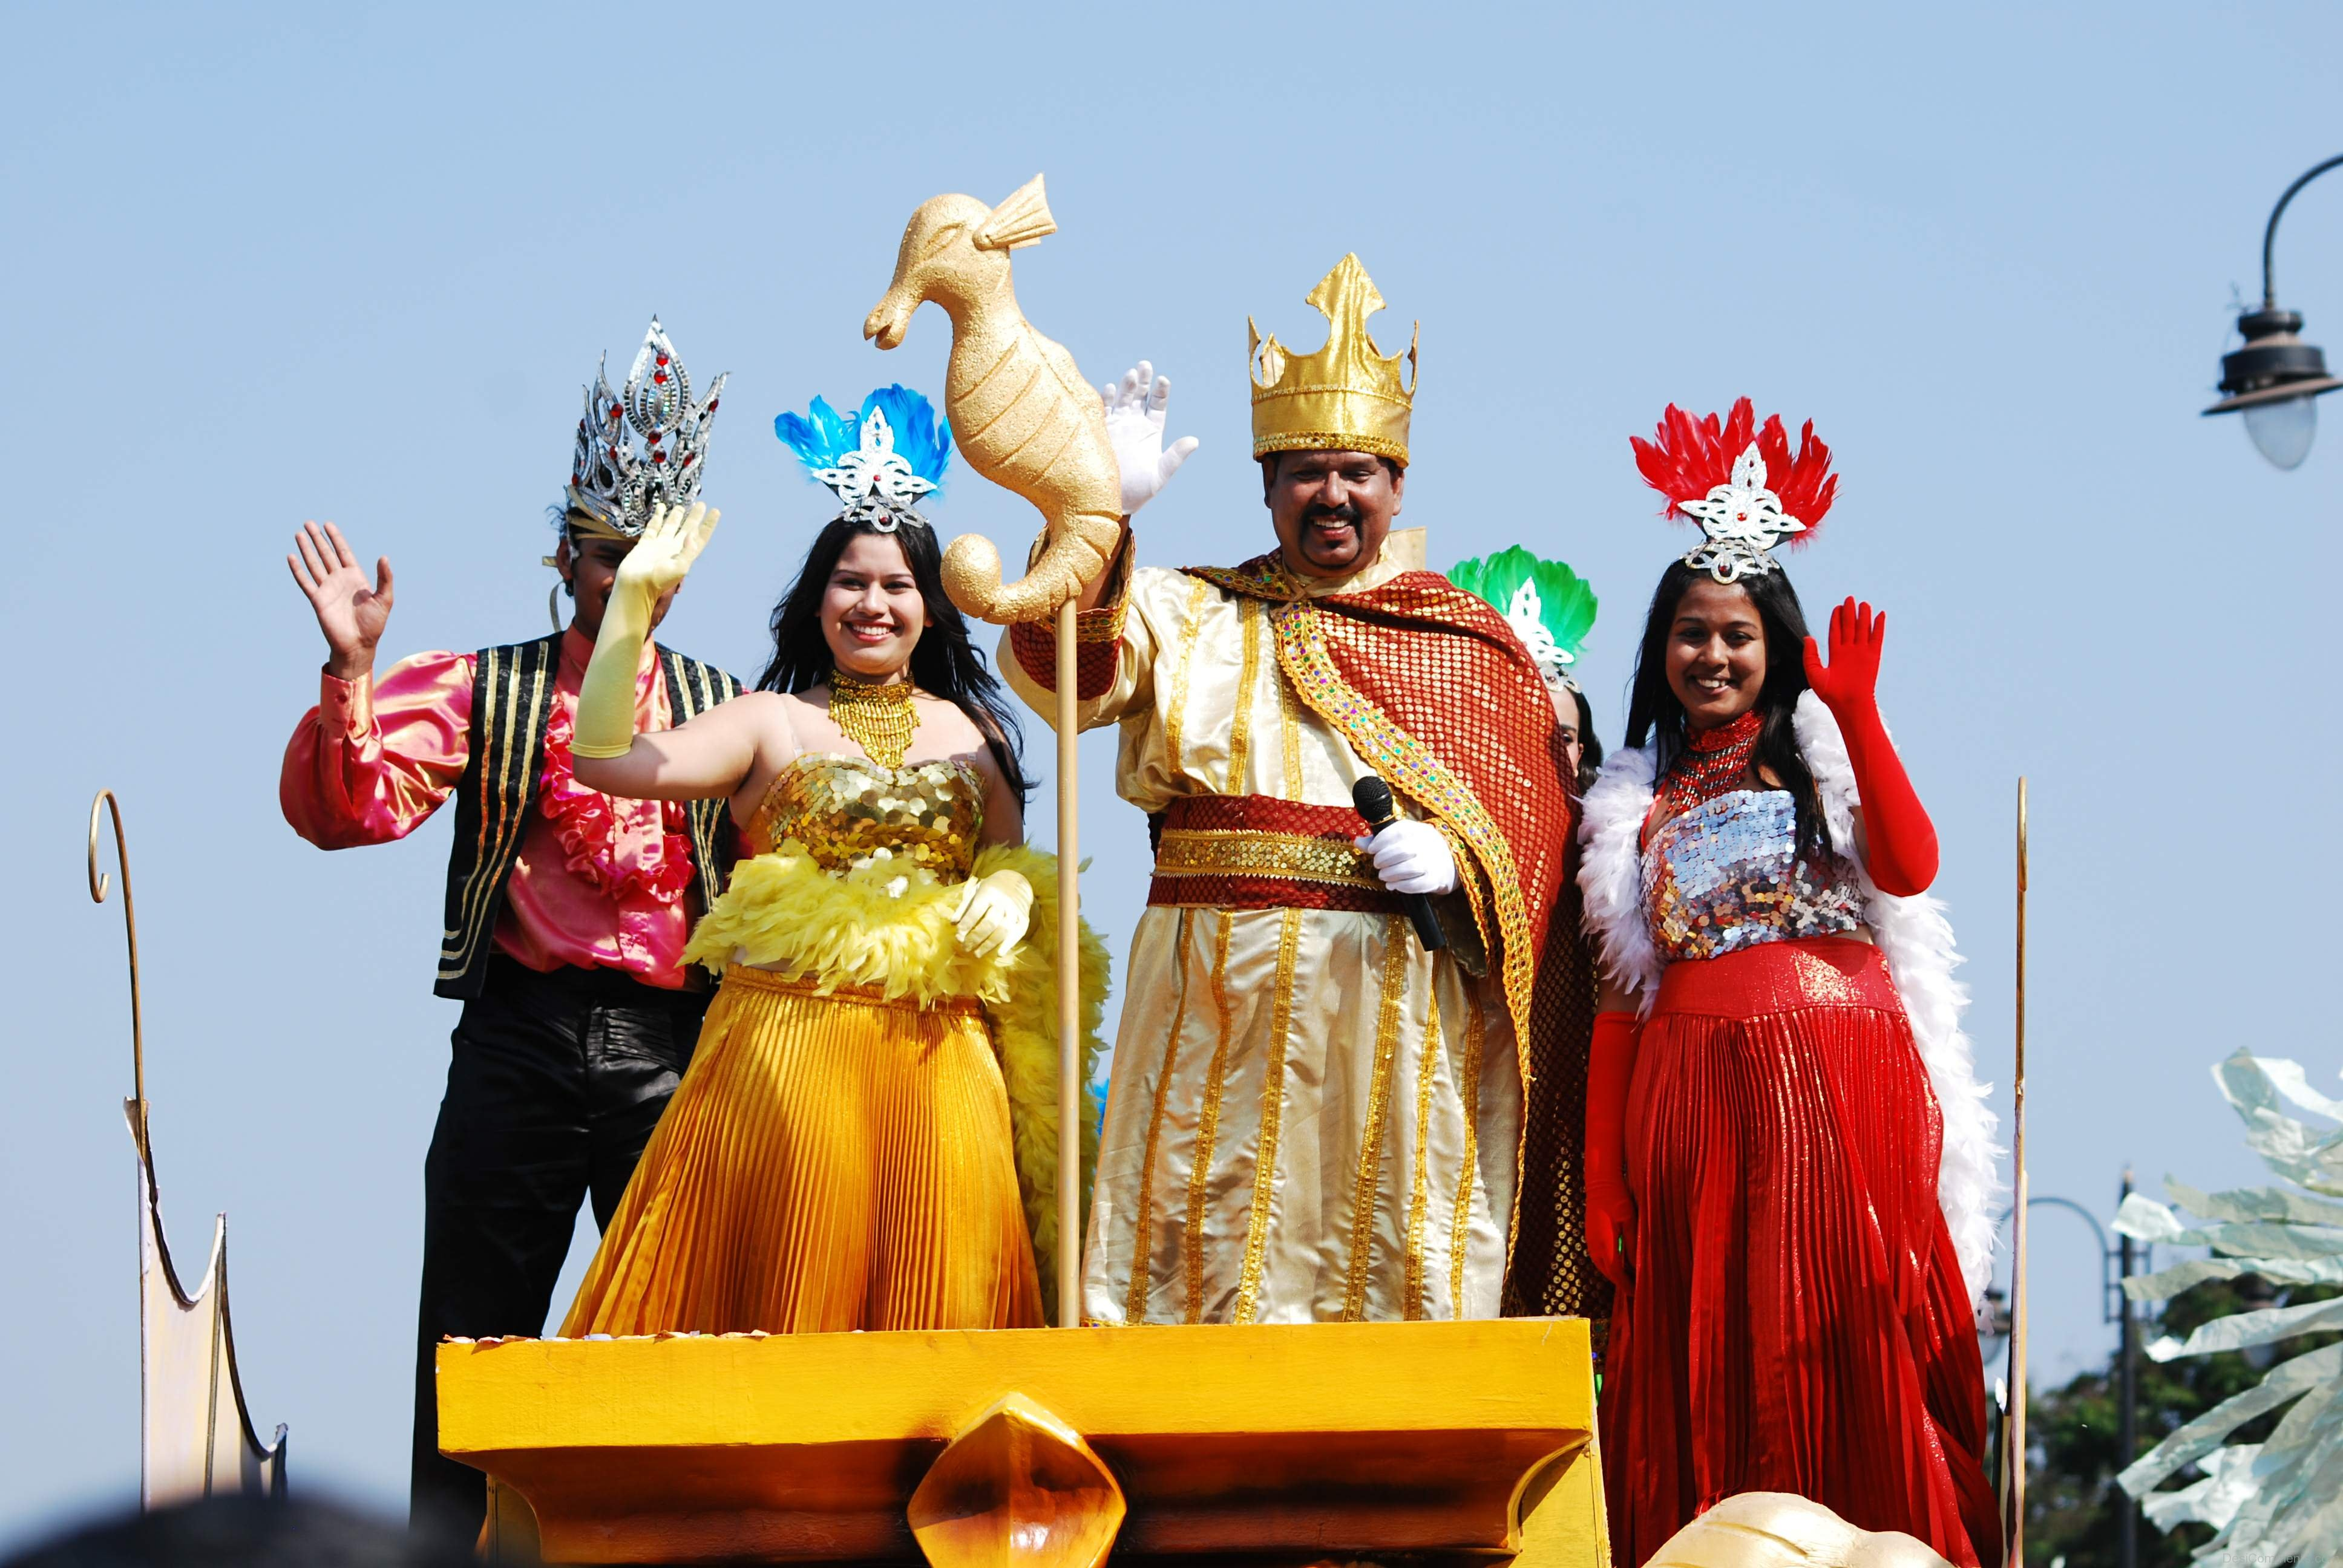 carnival in goa Carnival in goa is one of the smaller celebrations of the carnival festival worldwide, but is the largest in india and one of the few happening across asia it usually takes place around february.